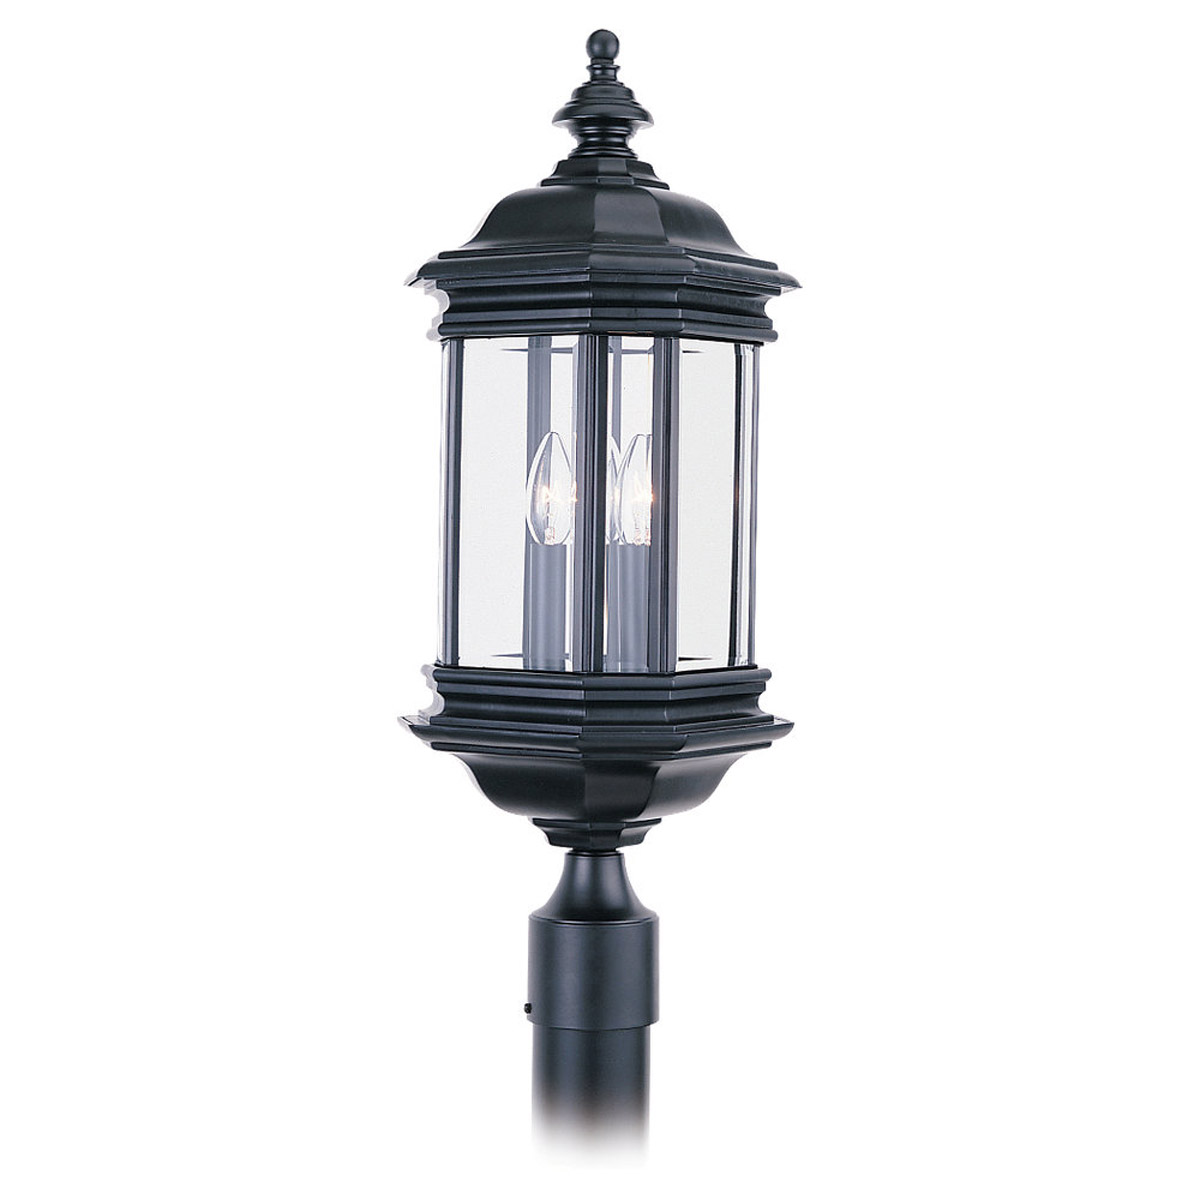 Sea Gull Lighting Hill Gate 3 Light Outdoor Post Lantern in Black 8238-12 photo